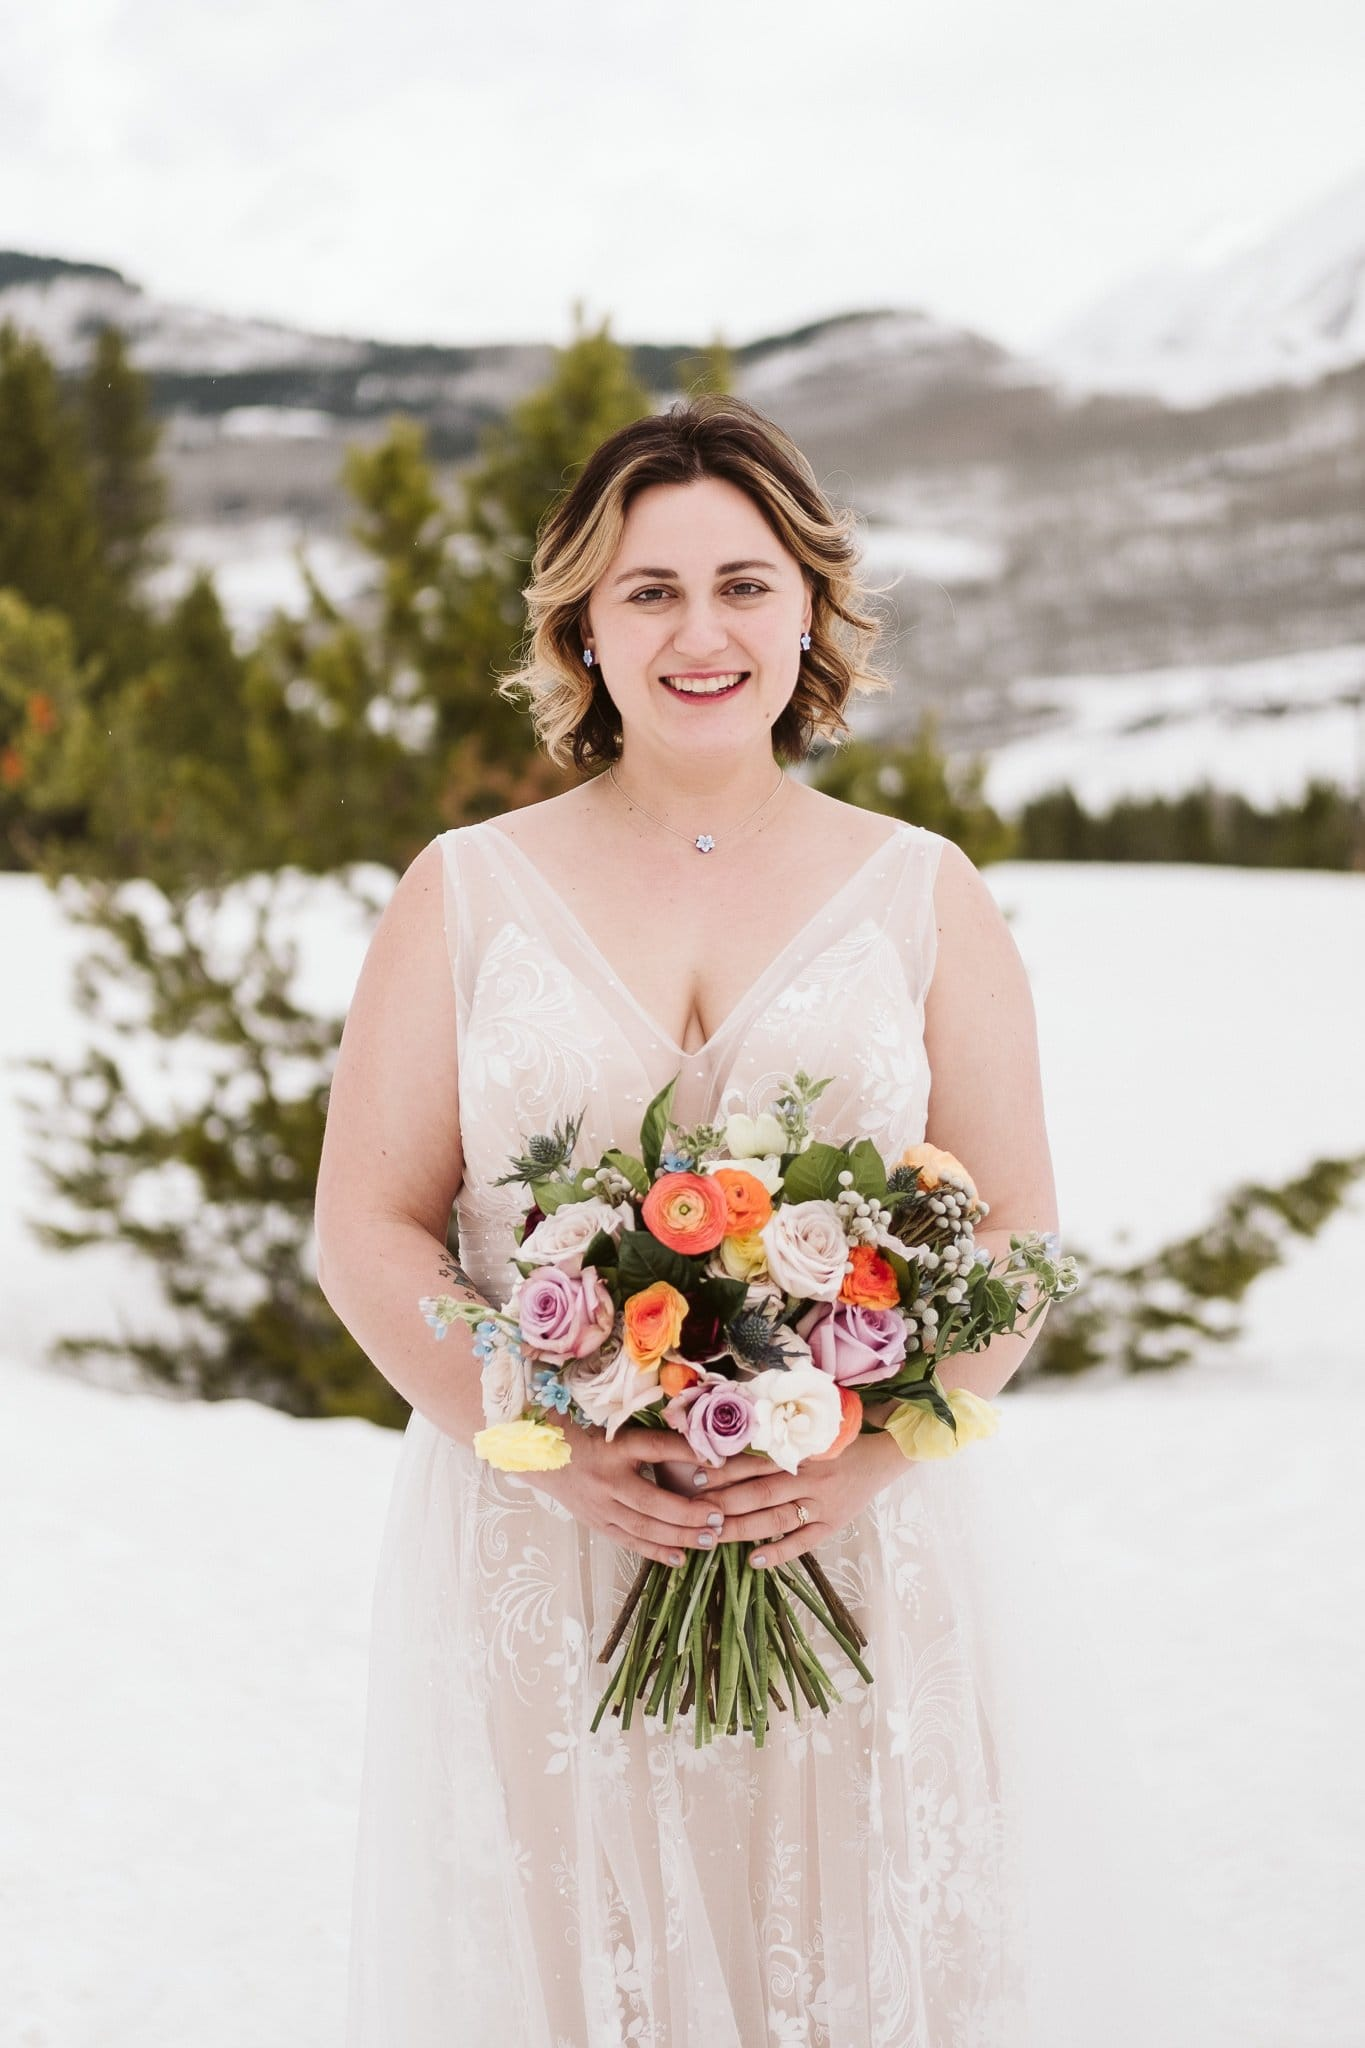 Bride holding Spring colored wedding bouquet by From the Ground Up Flowers in Crested Butte, blush wedding dress in snow